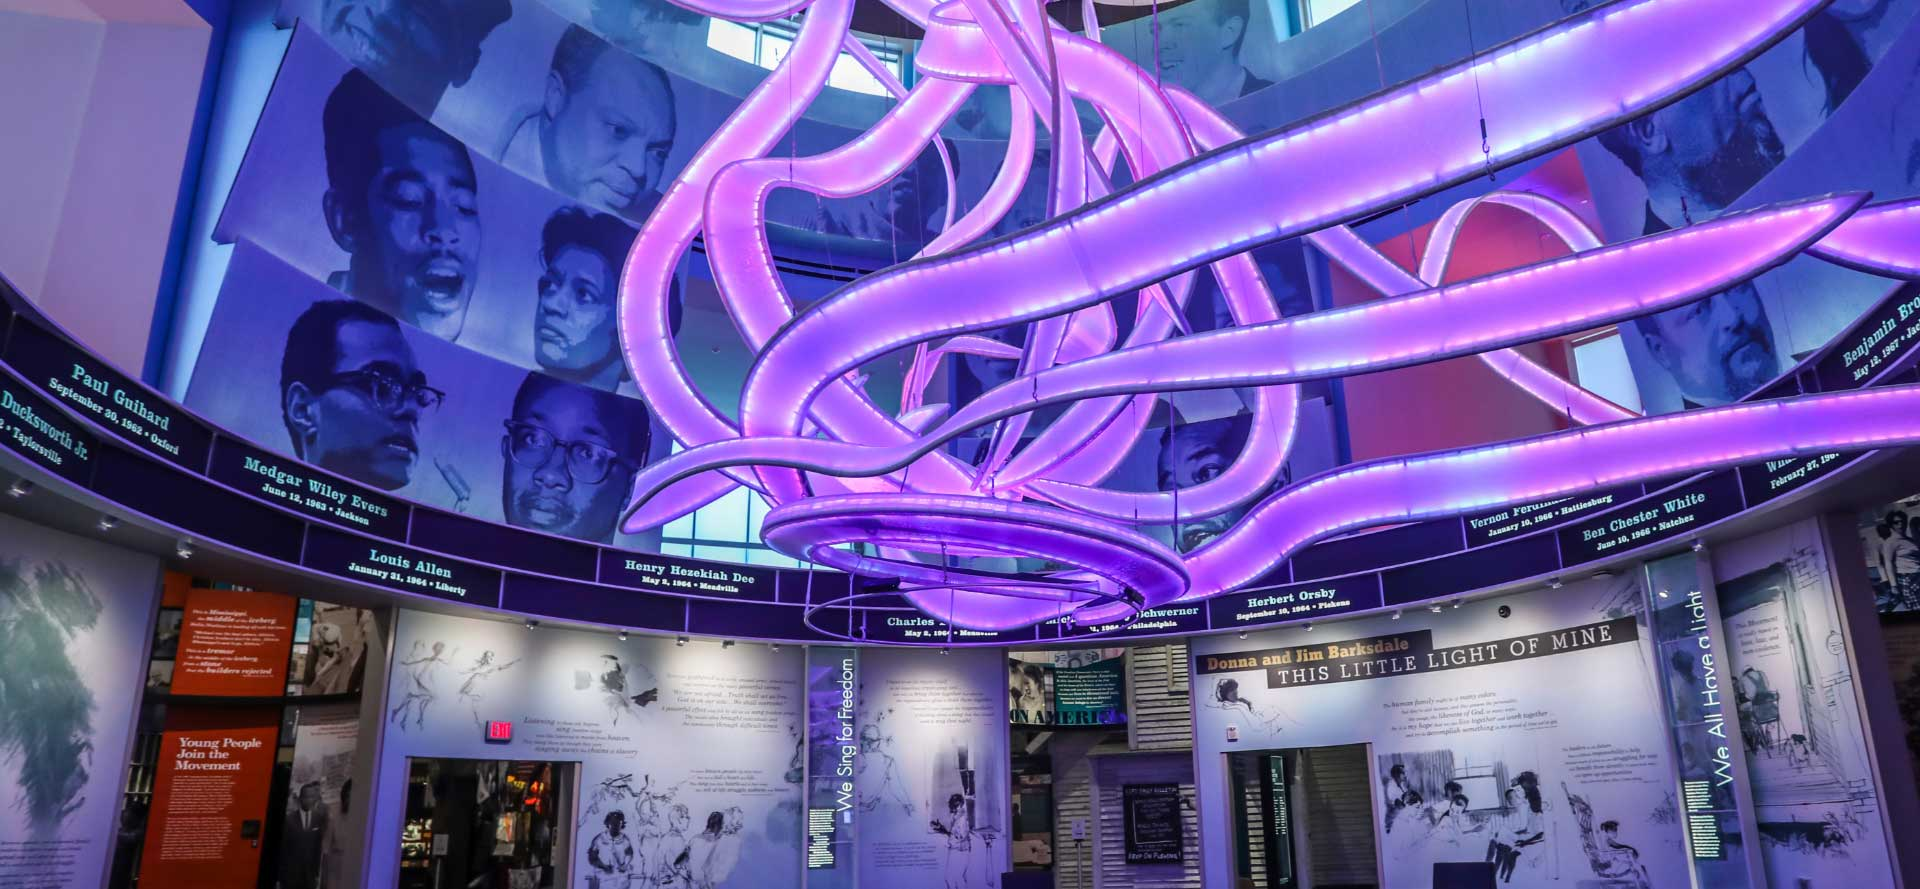 Interior of the Mississippi Civil Rights Museum